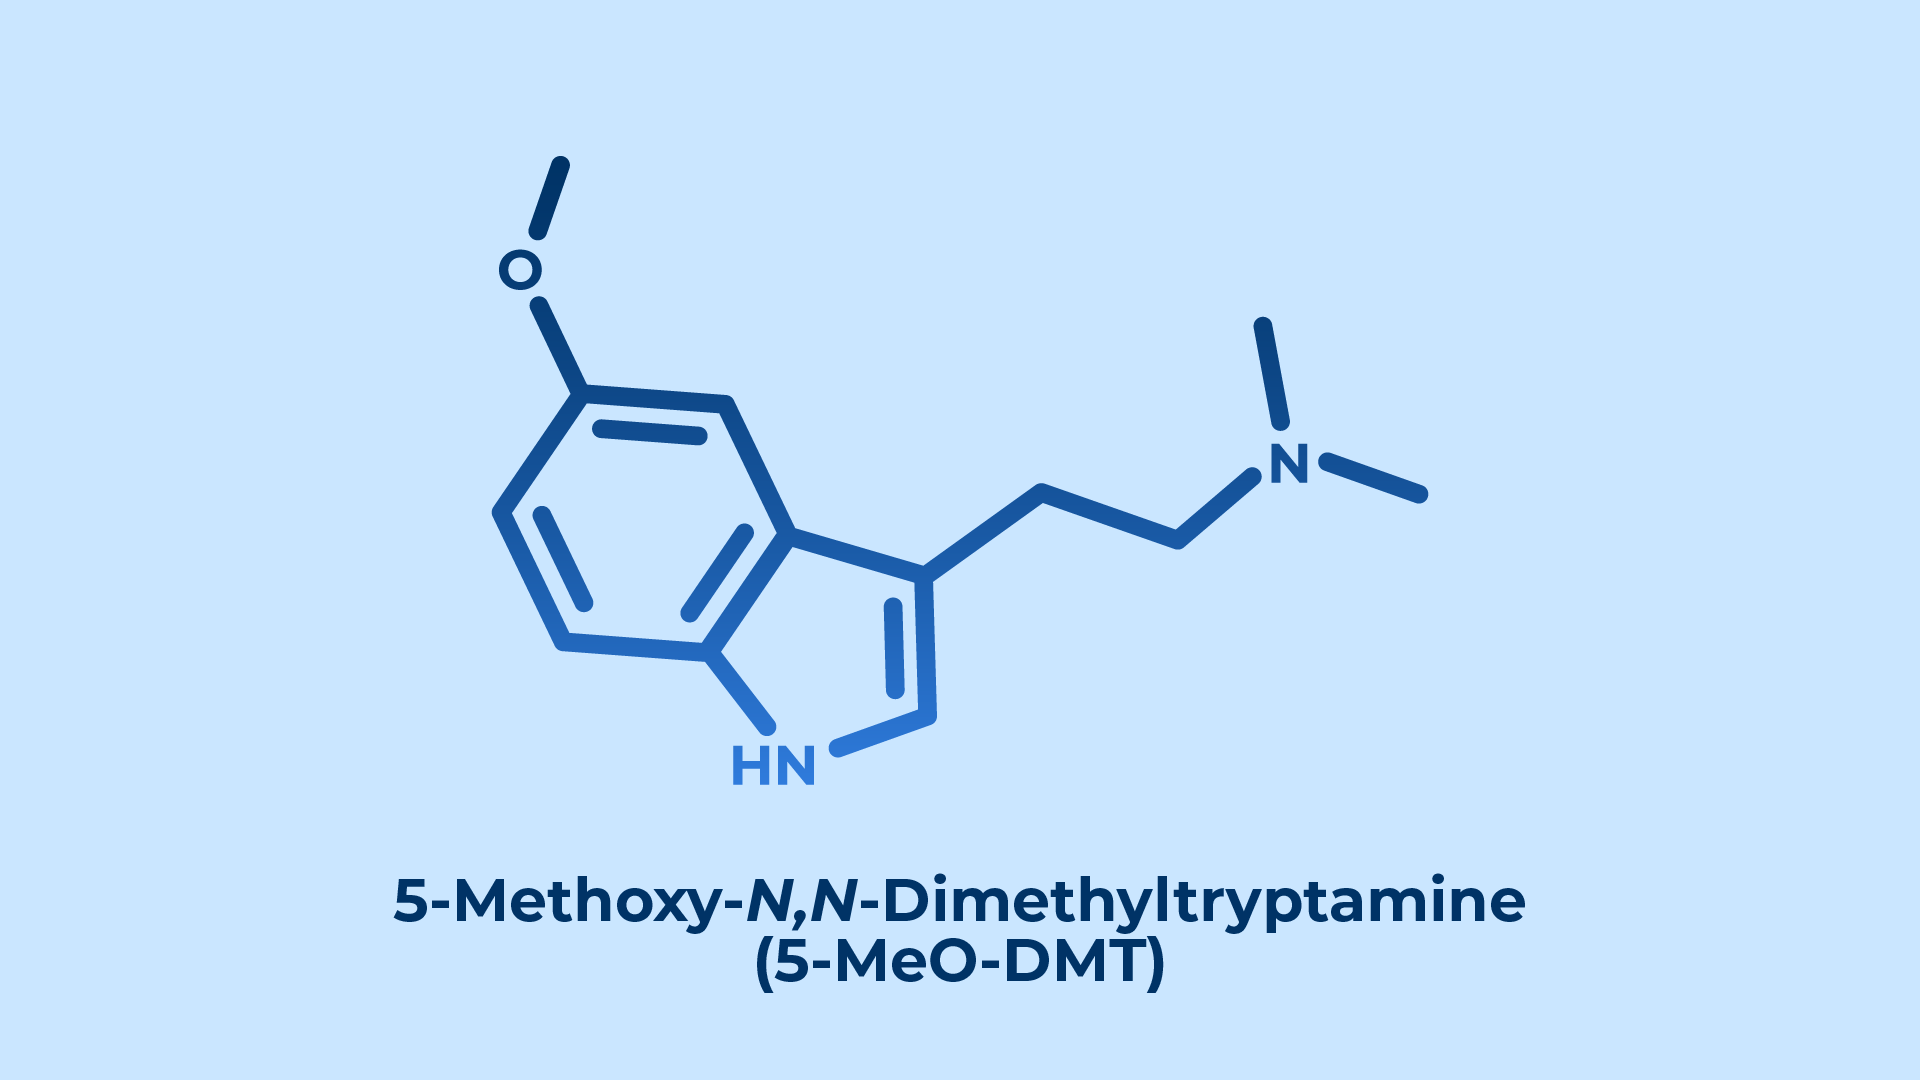 5-MeO-DMT Molecule and Chemical Structure